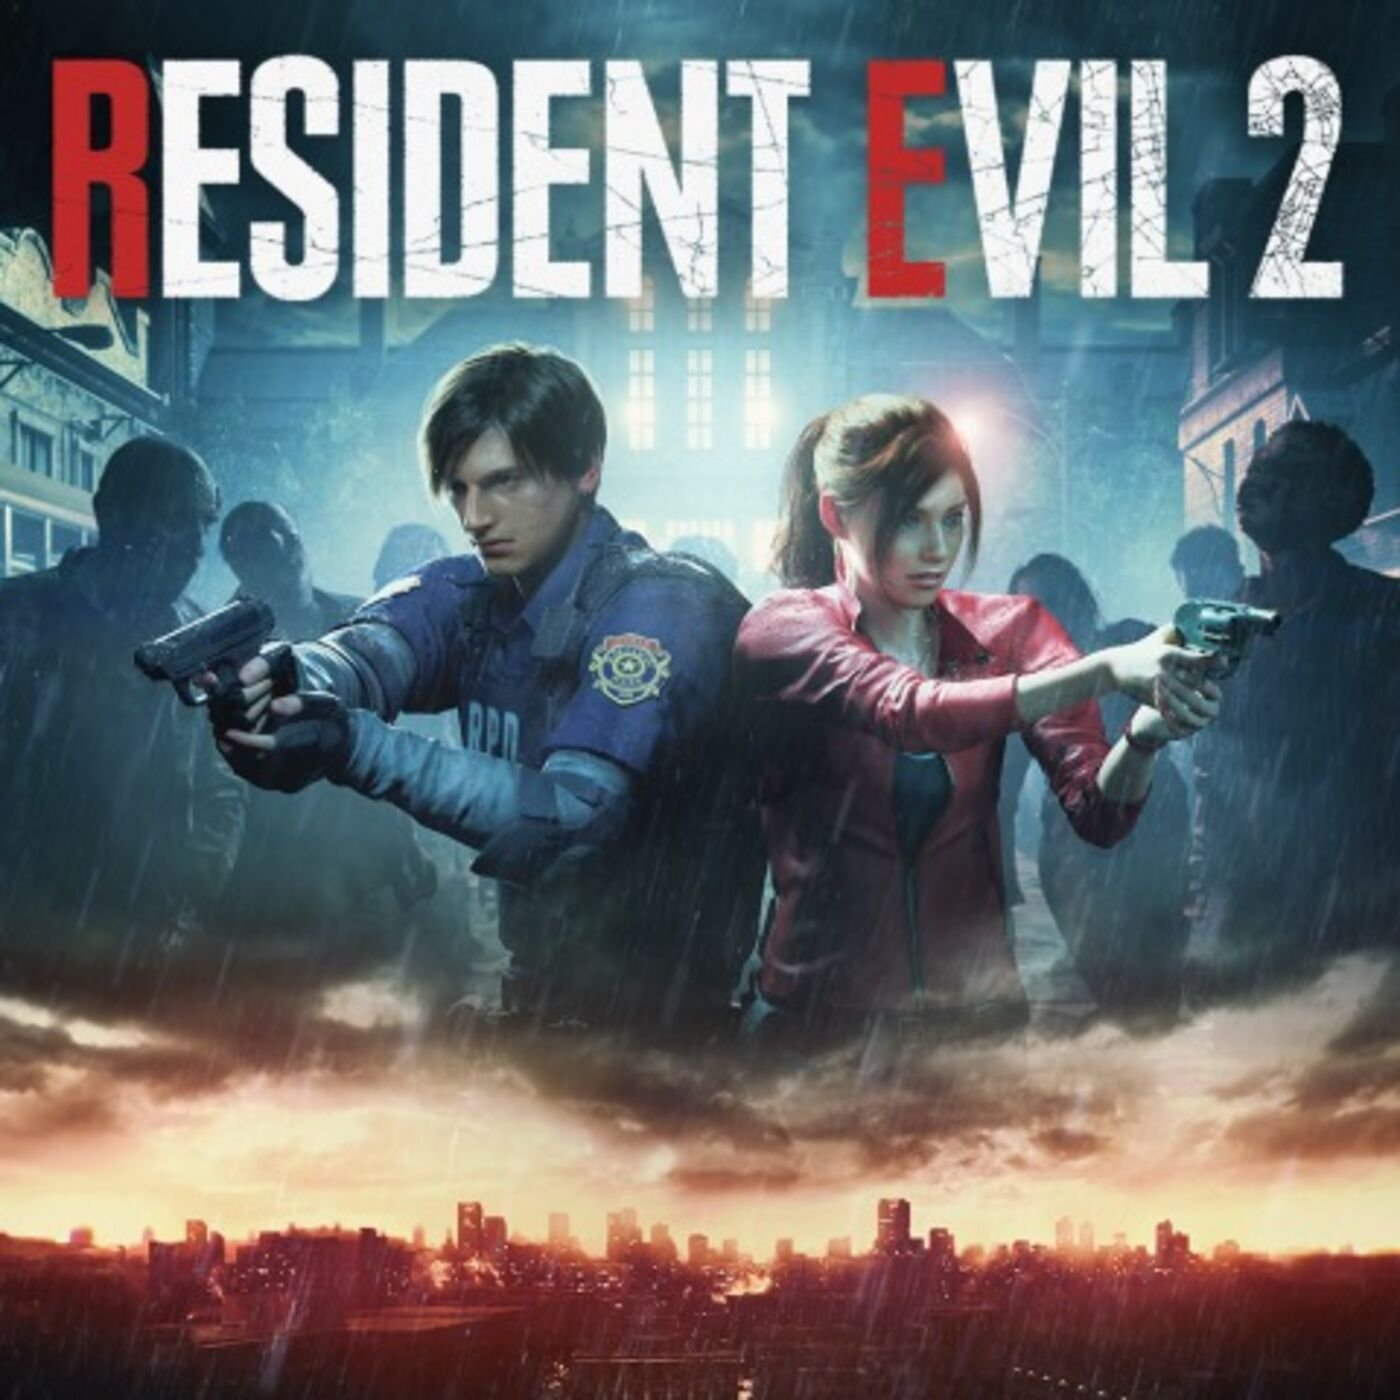 Resident Evil 2 Remake – Surviving the Horror (Analysis, Comparisons, and Impressions)